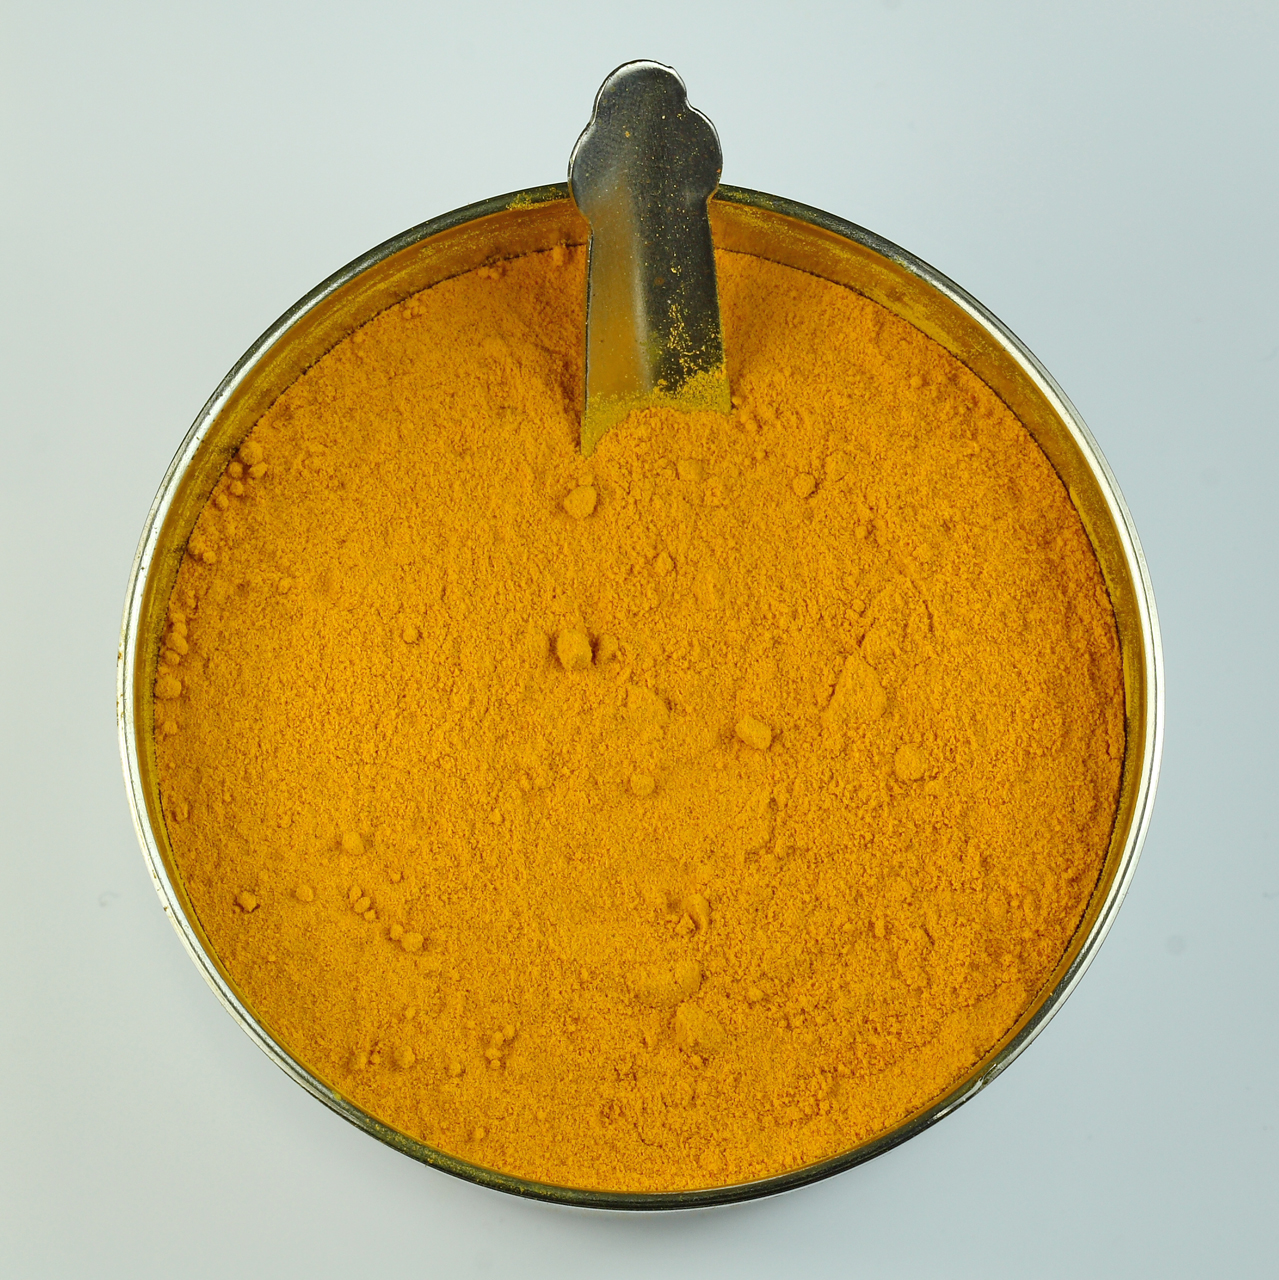 http://upload.wikimedia.org/wikipedia/commons/0/0a/Turmeric-powder.jpg